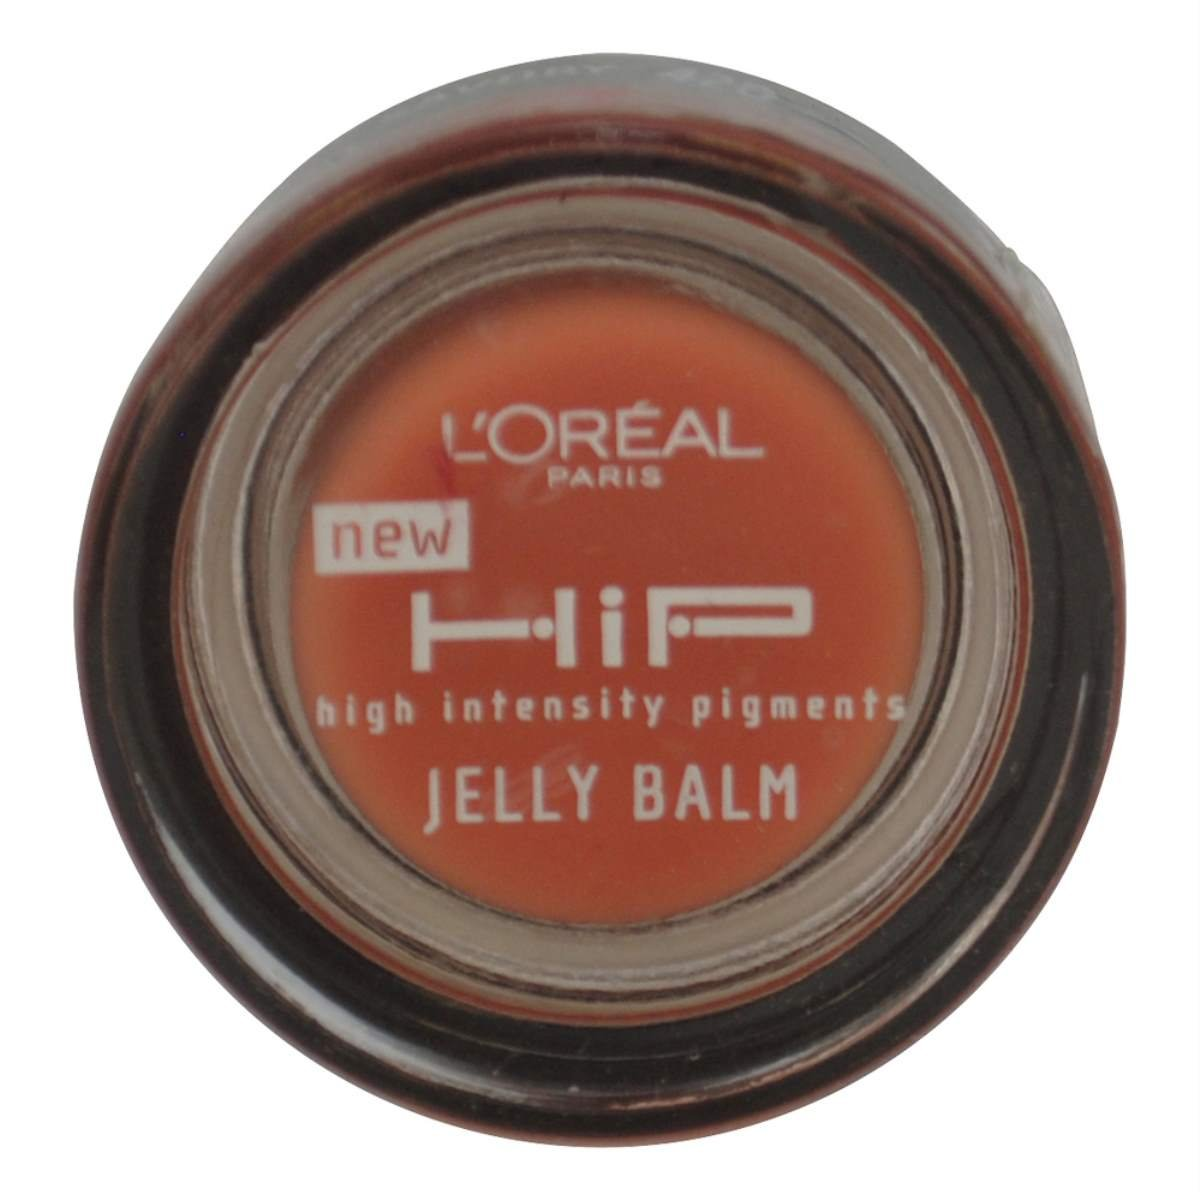 lovely LOREAL HIP (HIGH INTENSITY PIGMENT) 420 SAVORY JELLY BALM ...